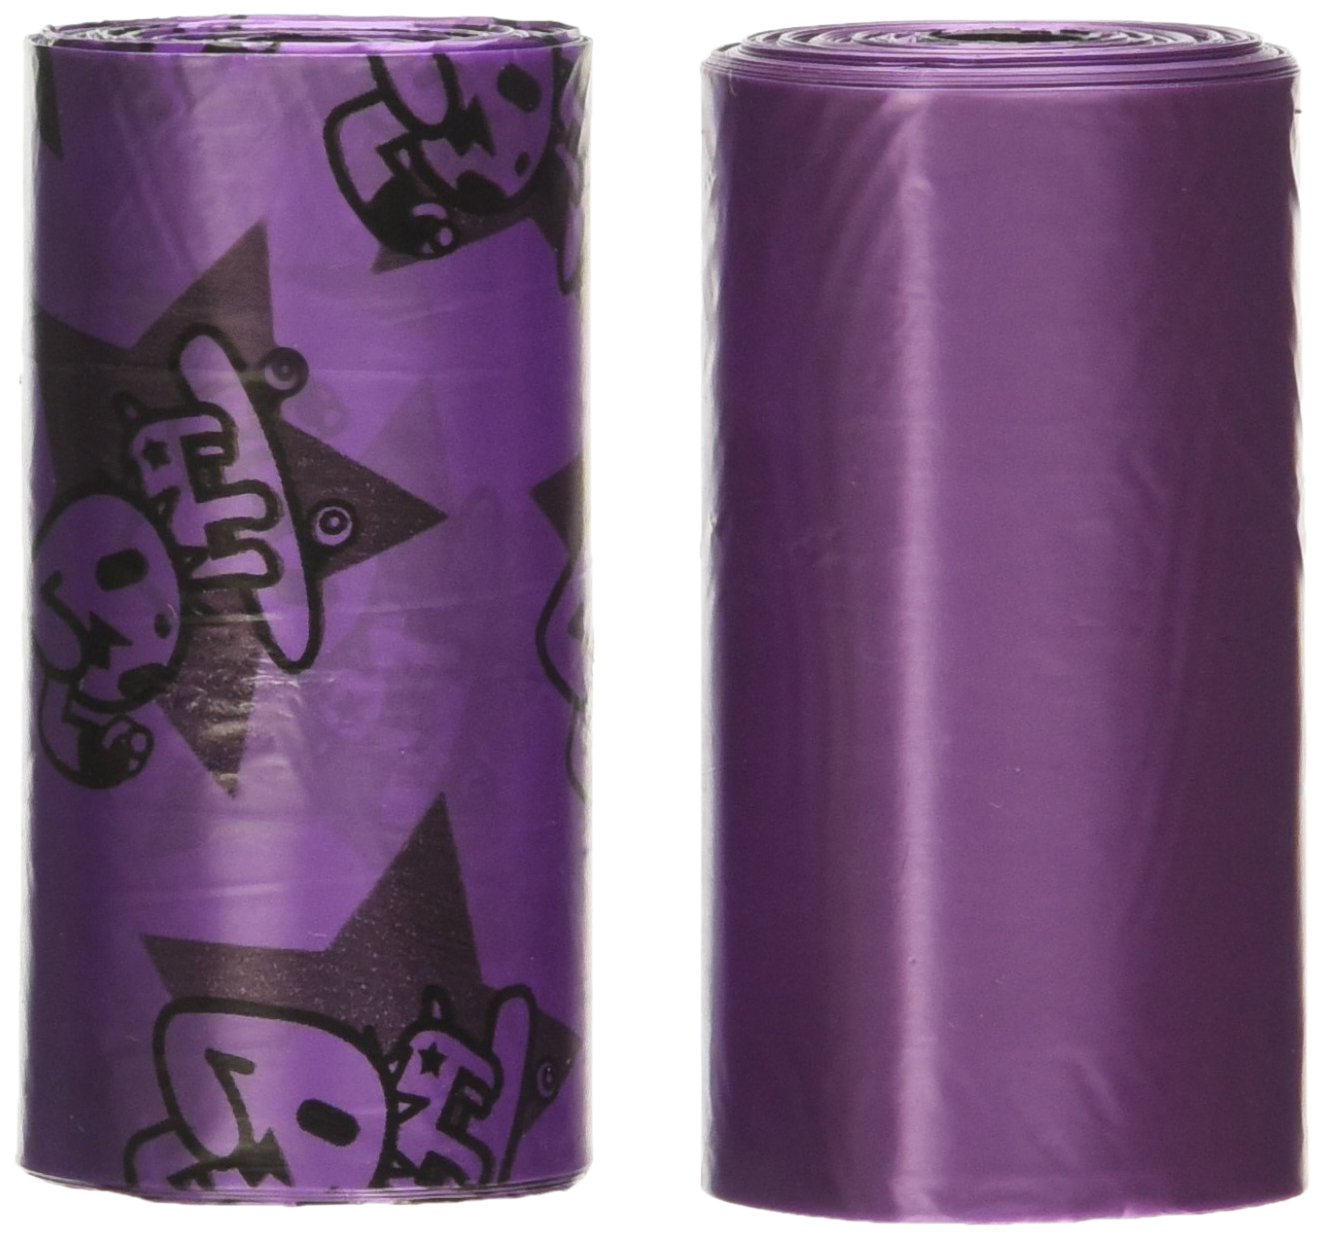 Nandog Pet Gear Nandog Doki Toki Waste Bag Replacements (16 Pack), Purple